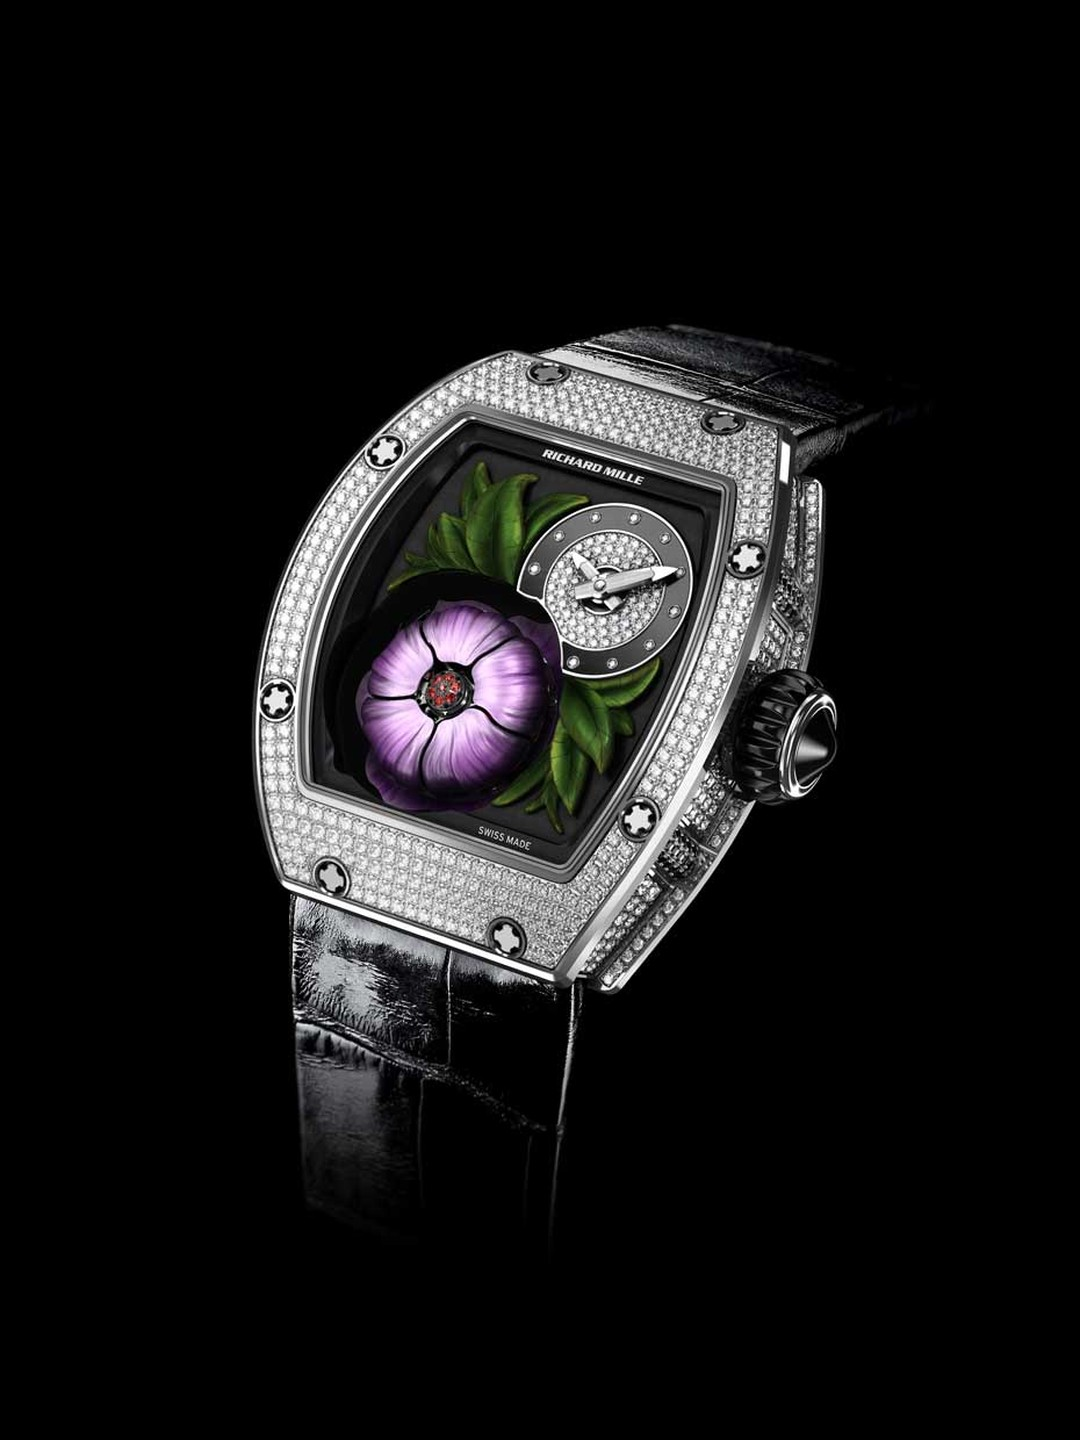 The new RM 19-02 Tourbillon Fleur watch from Richard Mille.